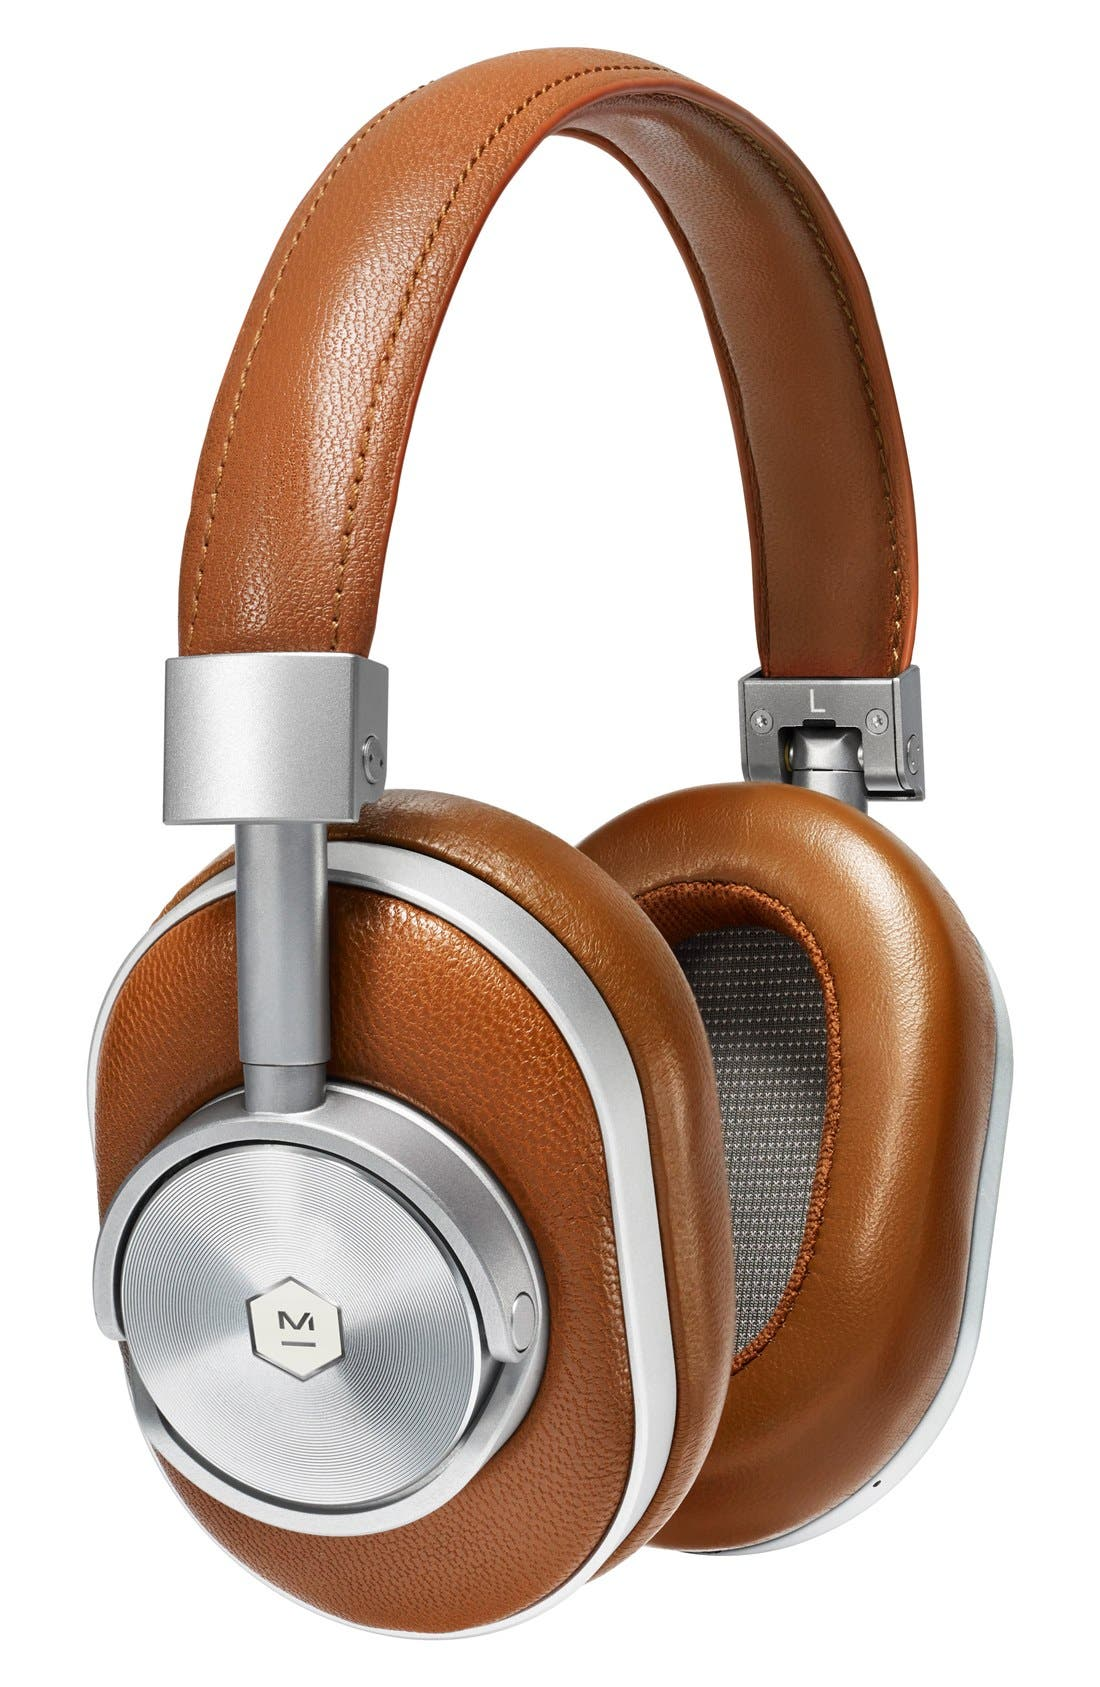 Main Image - Master & Dynamic MW60 Wireless Leather Over Ear Headphones